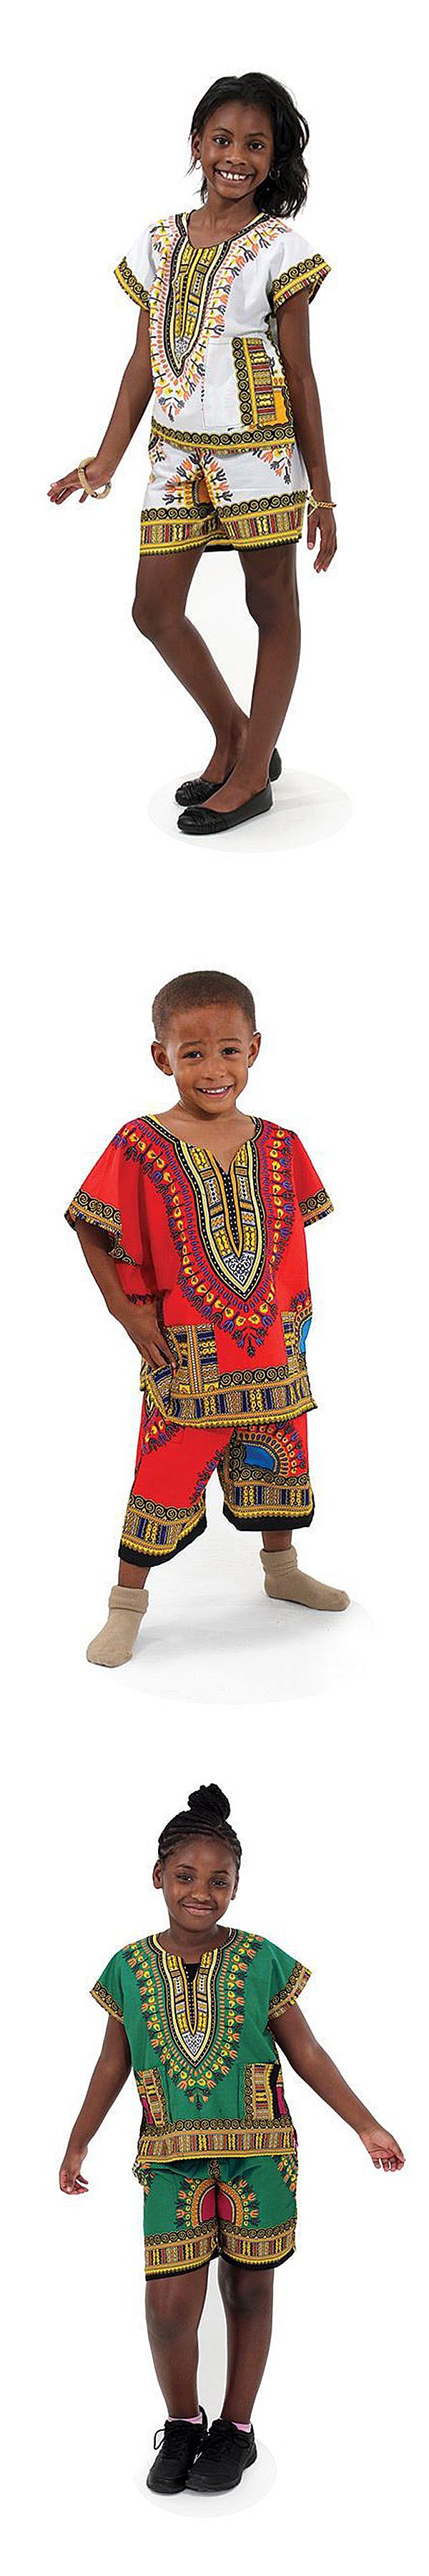 African Style Kids Clothing from Africa Imports - Celebrate Africa with these adorable kids clothing in traditional African colors and patterns.  Kids will love wearing the colorful clothing that celebrates African traditions. Perfect as a Christmas present for the kids!  #kids #kidsfashion #african #africa #dressup #fashion #clothing #kidsclothes #colorful #pattern #gift #giftit #kidsgift